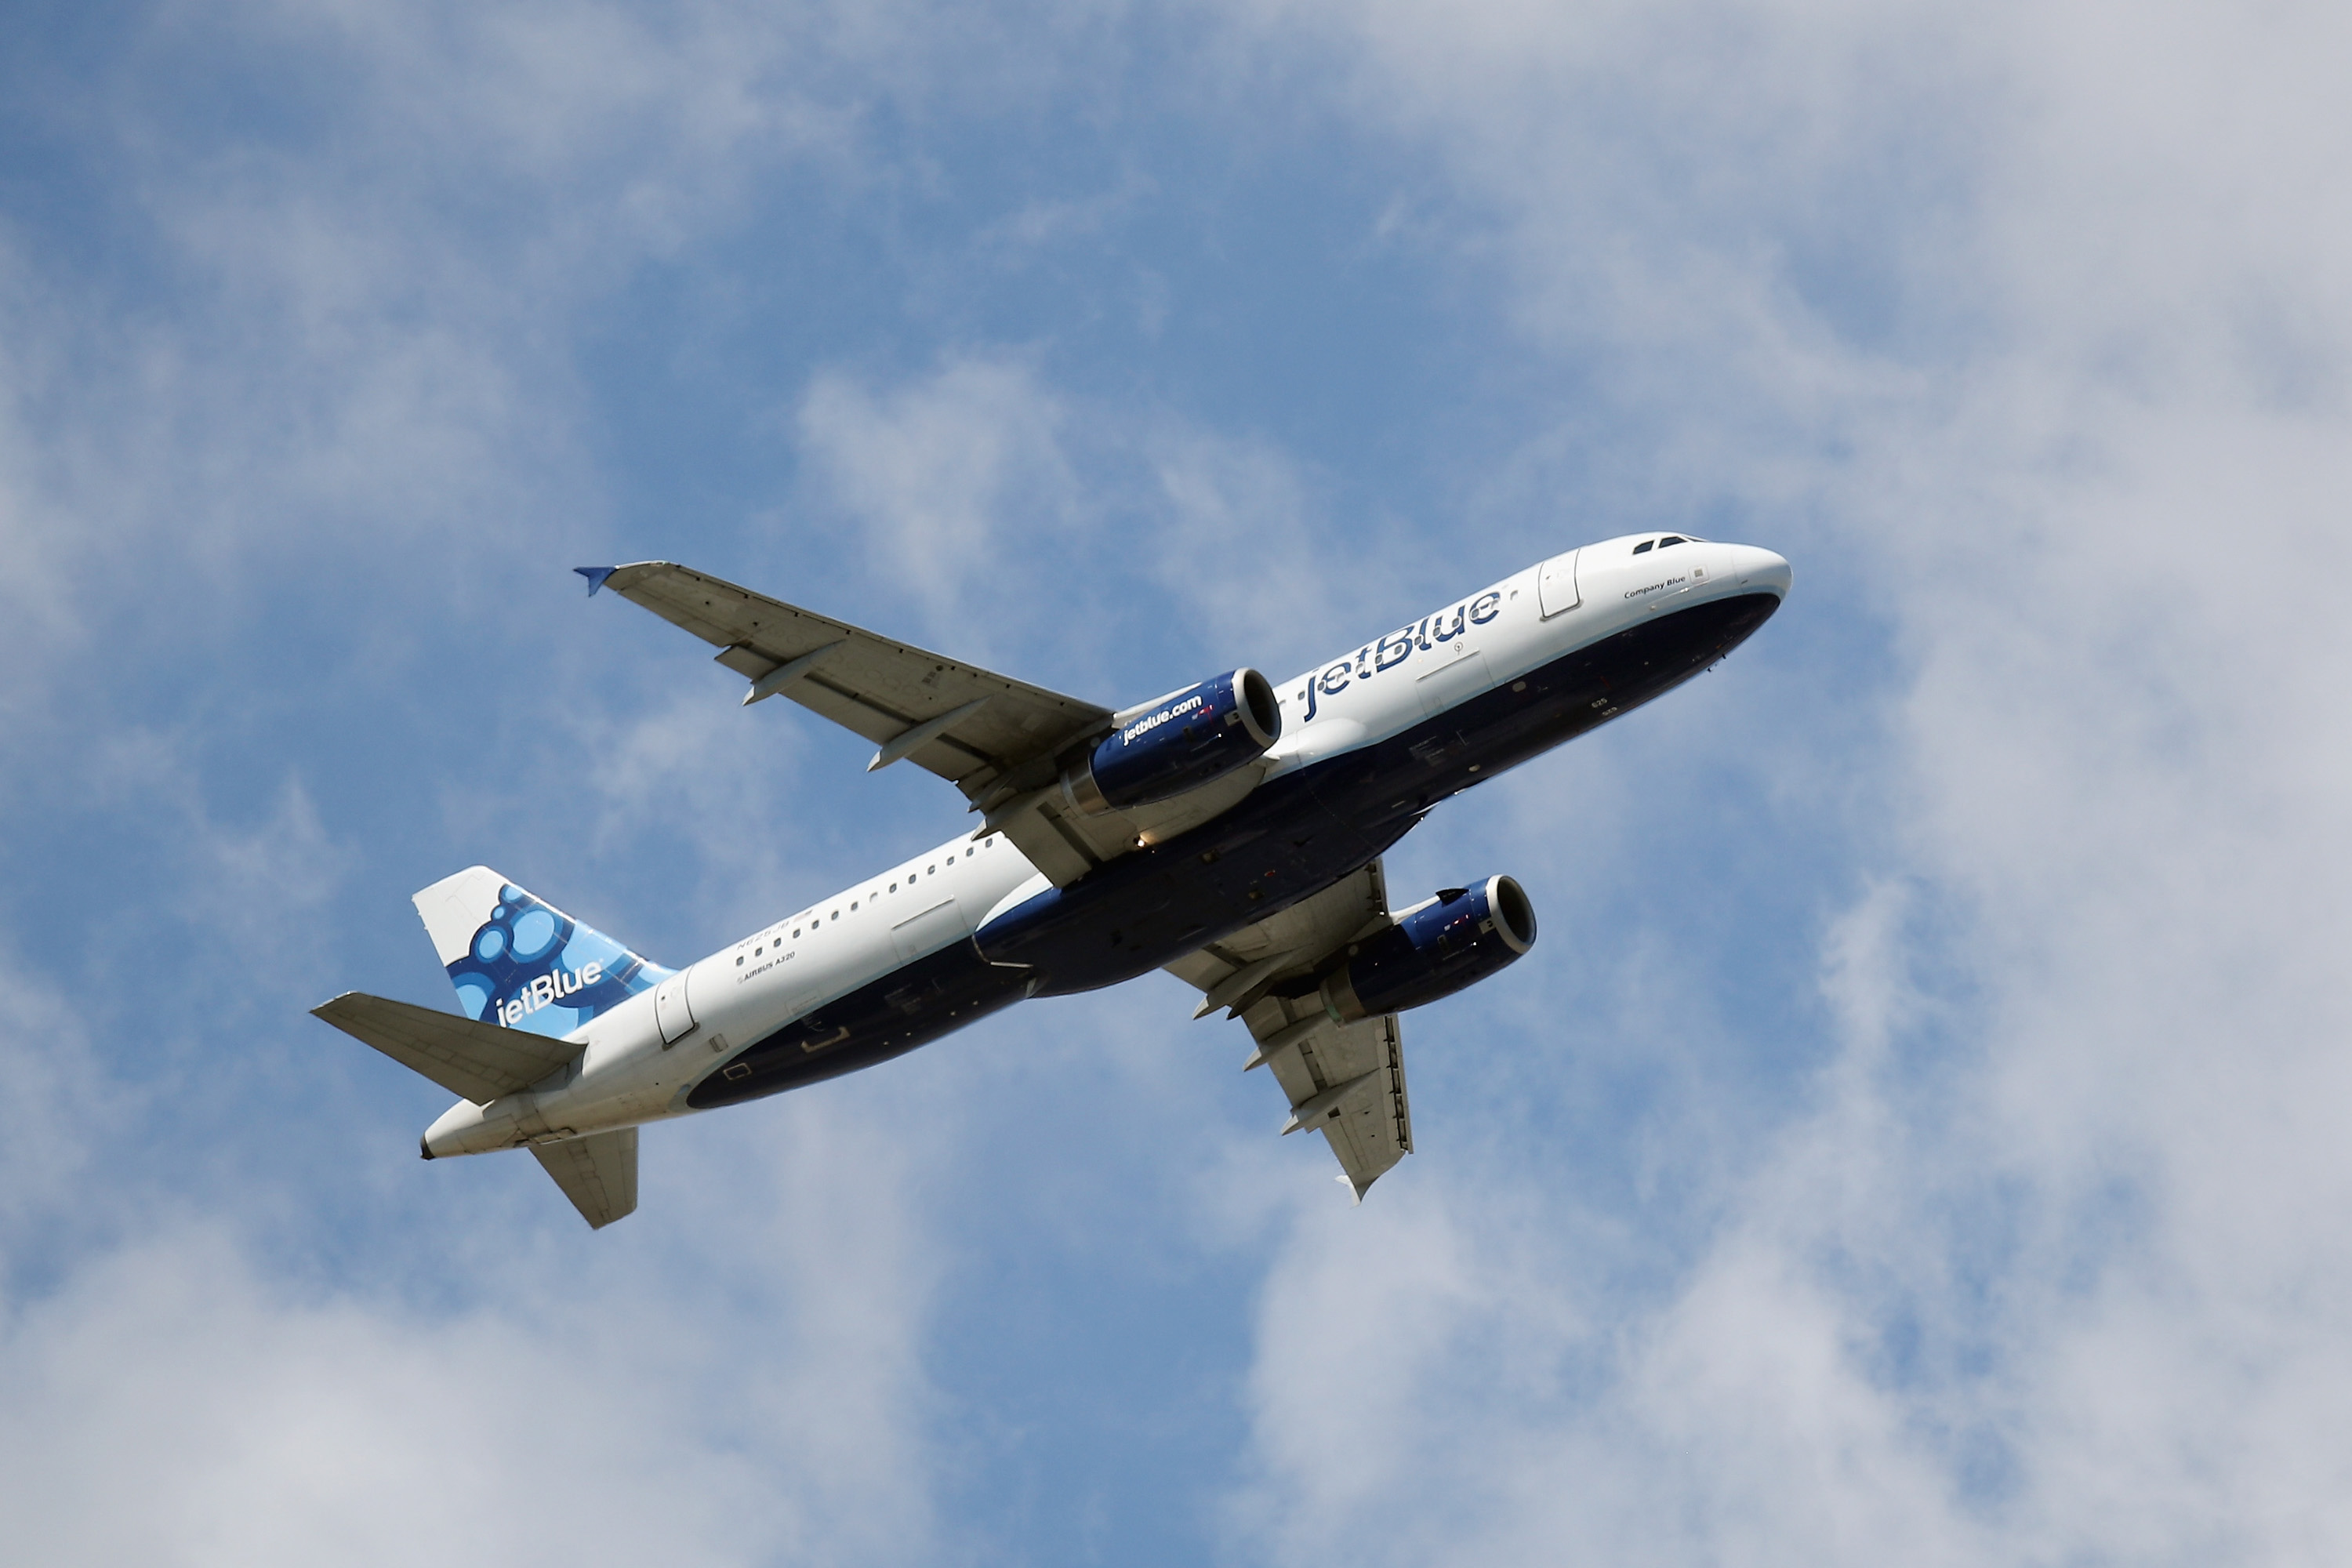 A plane operated by JetBlue takes off from JFK Airport on August 24, 2019 in the Queens borough of New York City.